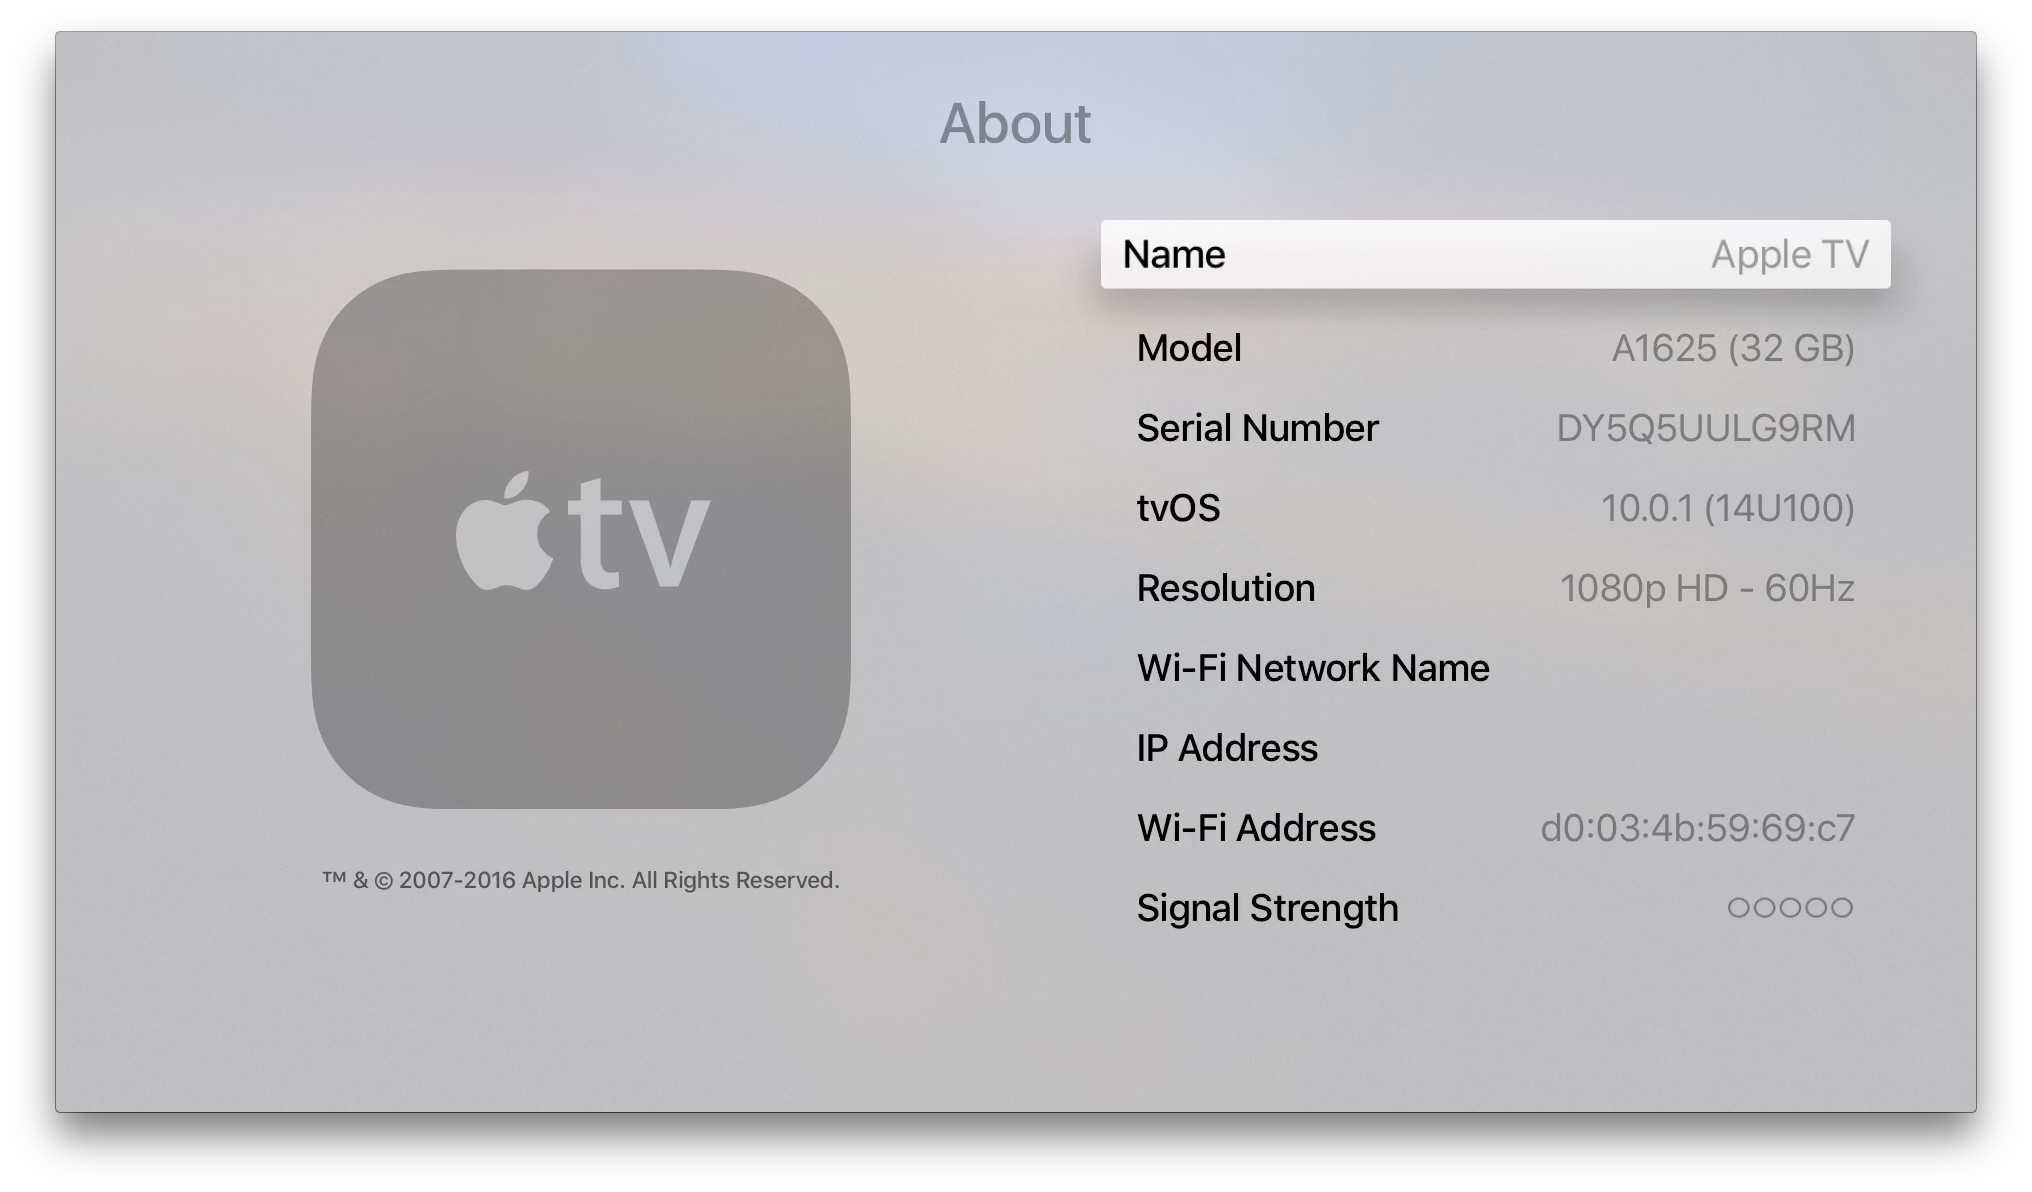 Settings General About menu in Apple TV gen 4